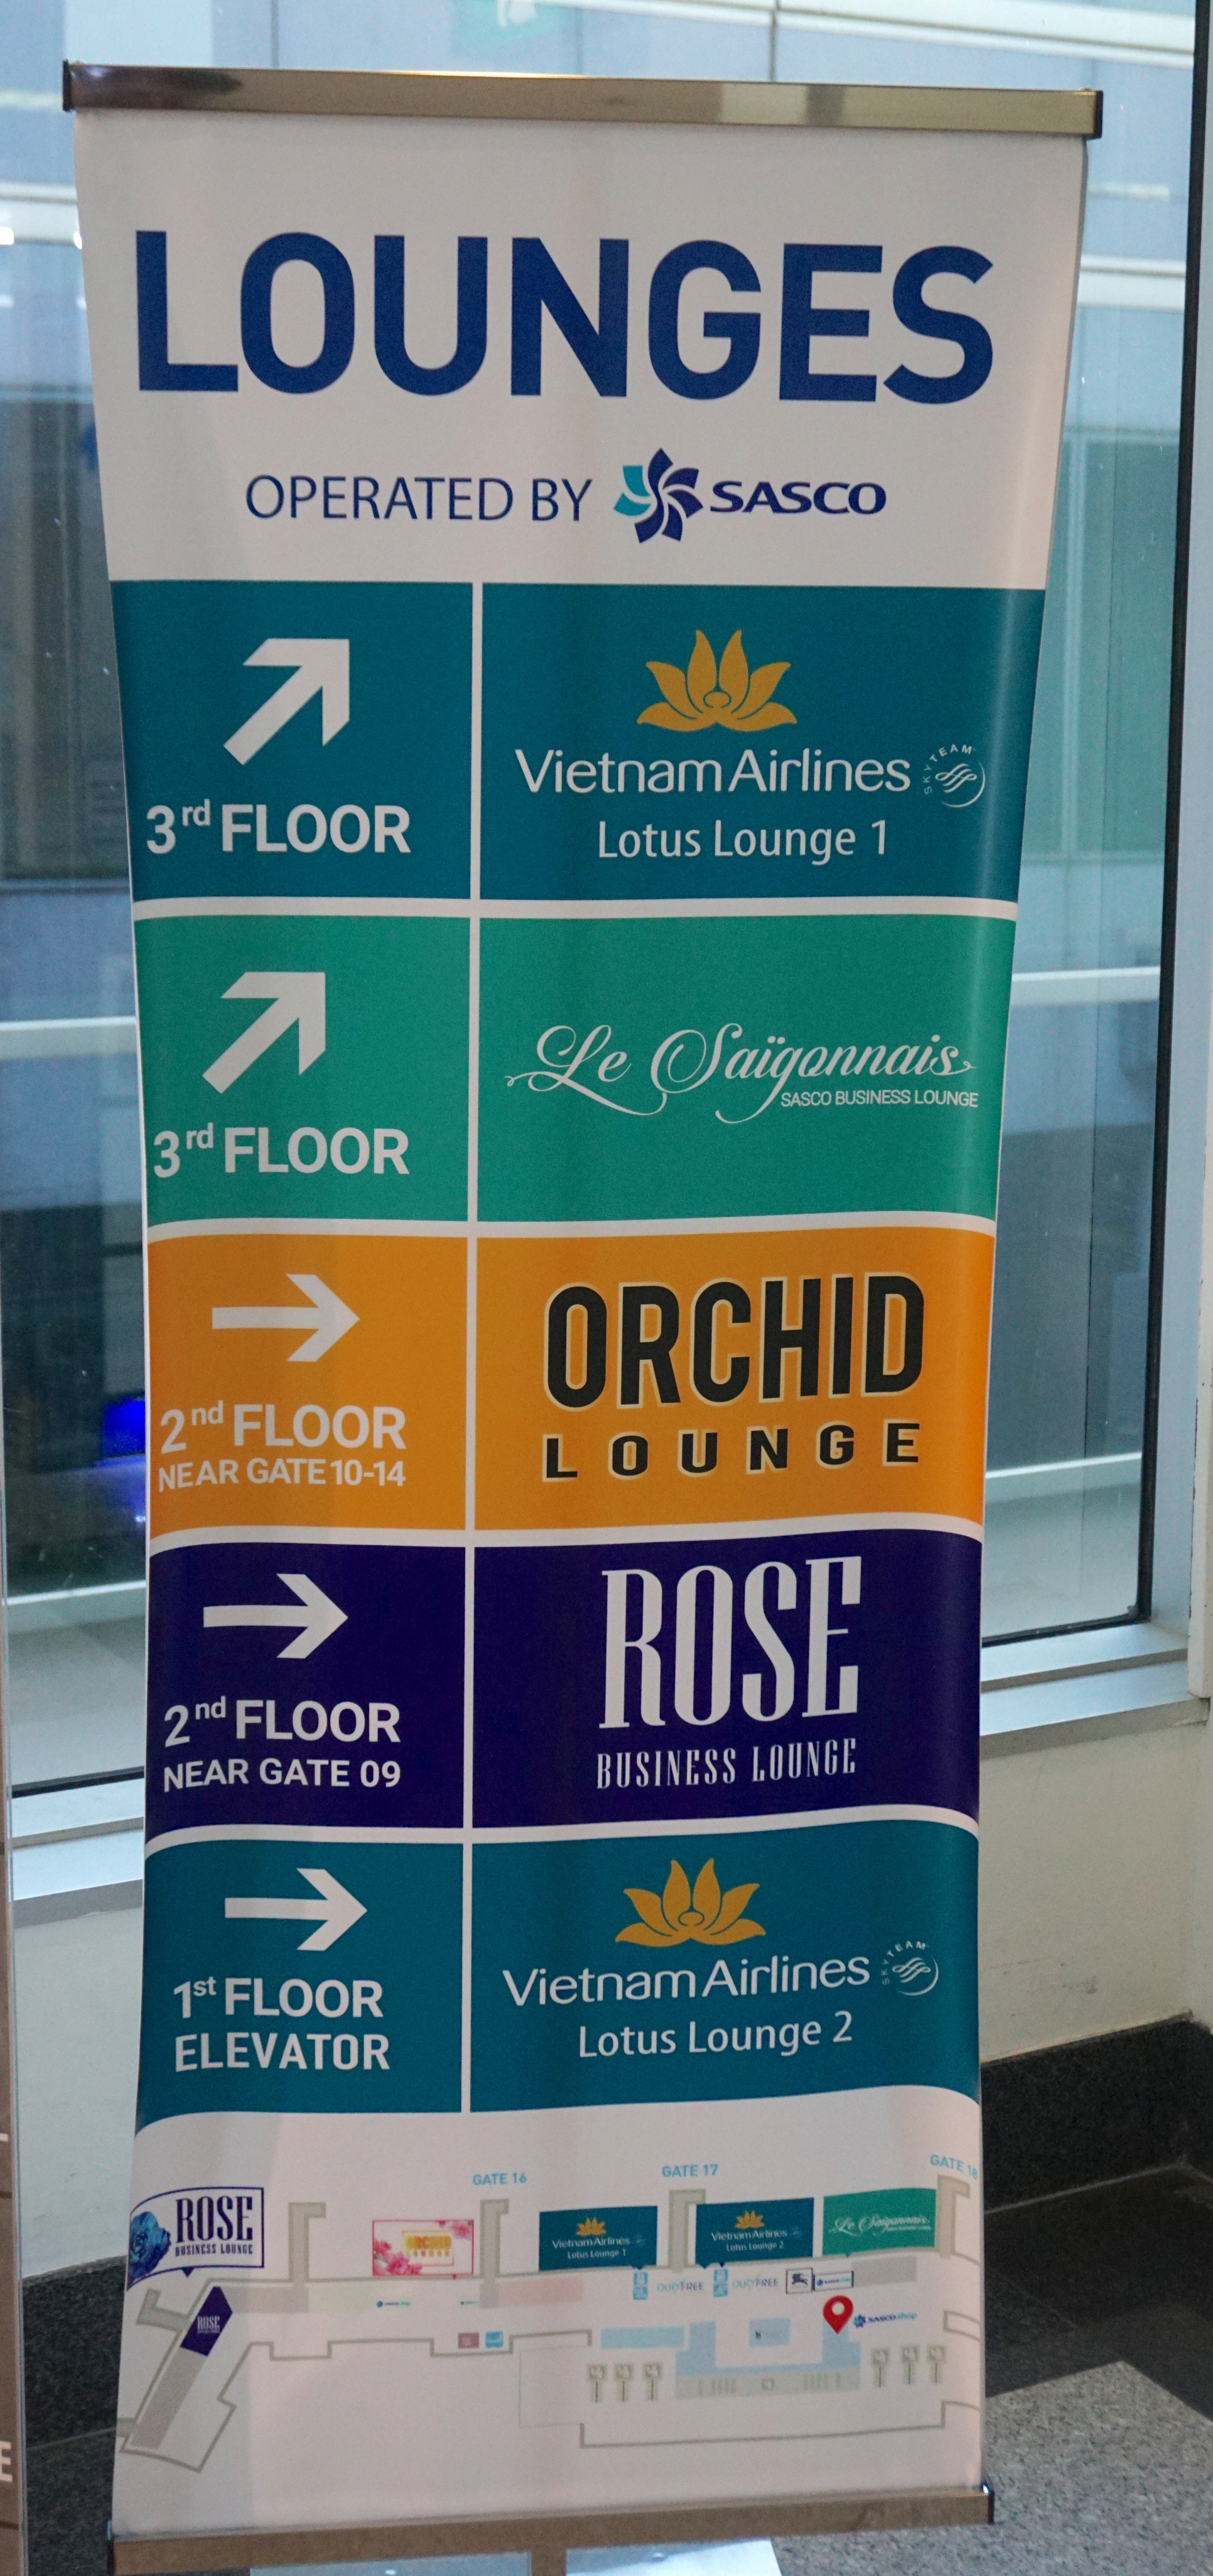 List of lounges in Tan Son Nhat International Airport